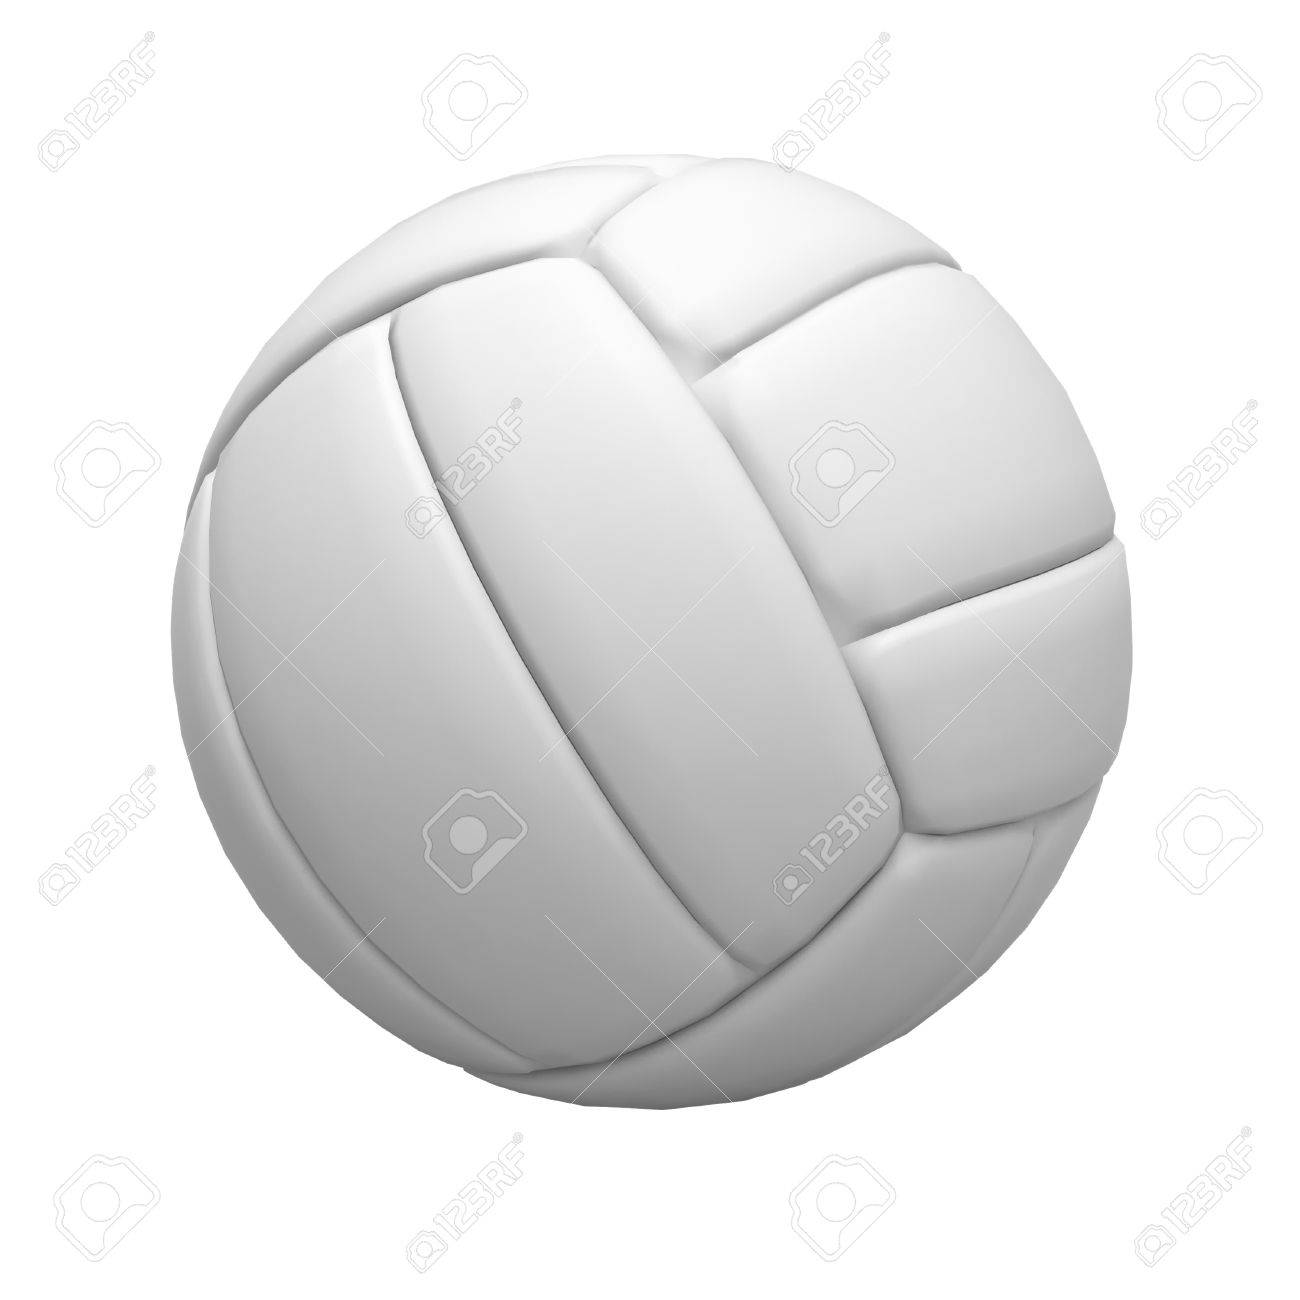 Blank Volley Ball On White Background Stock Photo Picture And 1300x1300